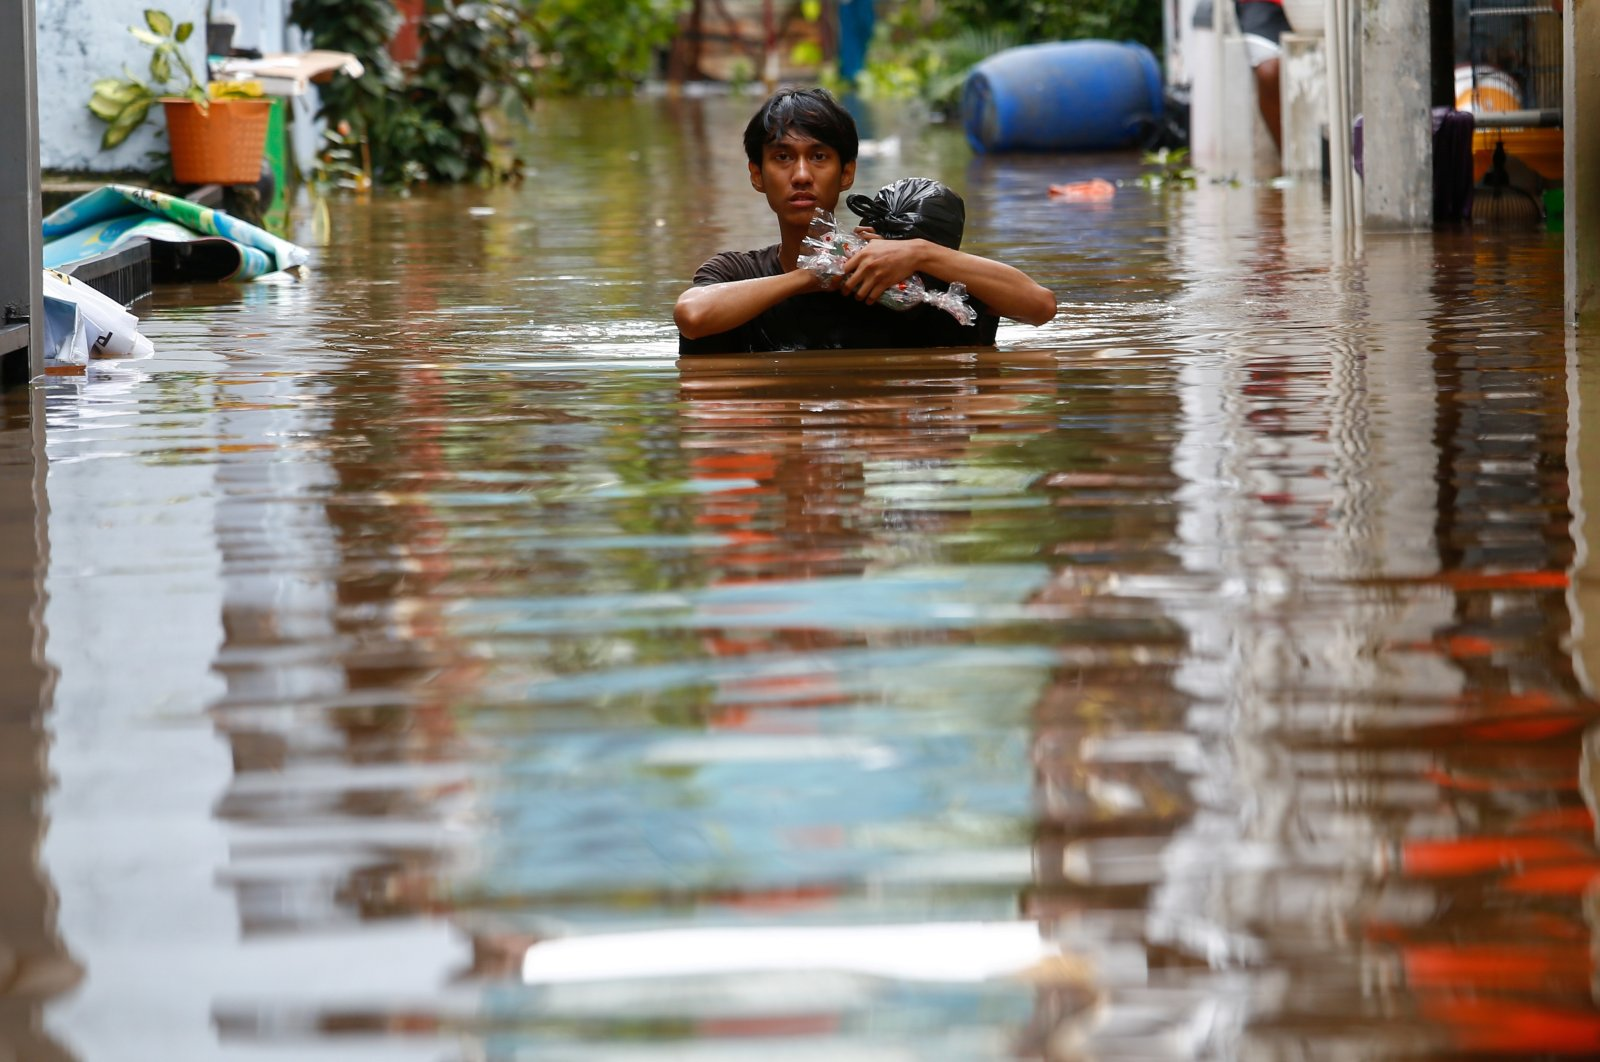 A man carrying his goods walks through the water in an area affected by floods, following heavy rains in Jakarta, Indonesia, Feb. 20, 2021. (Reuters Photo)